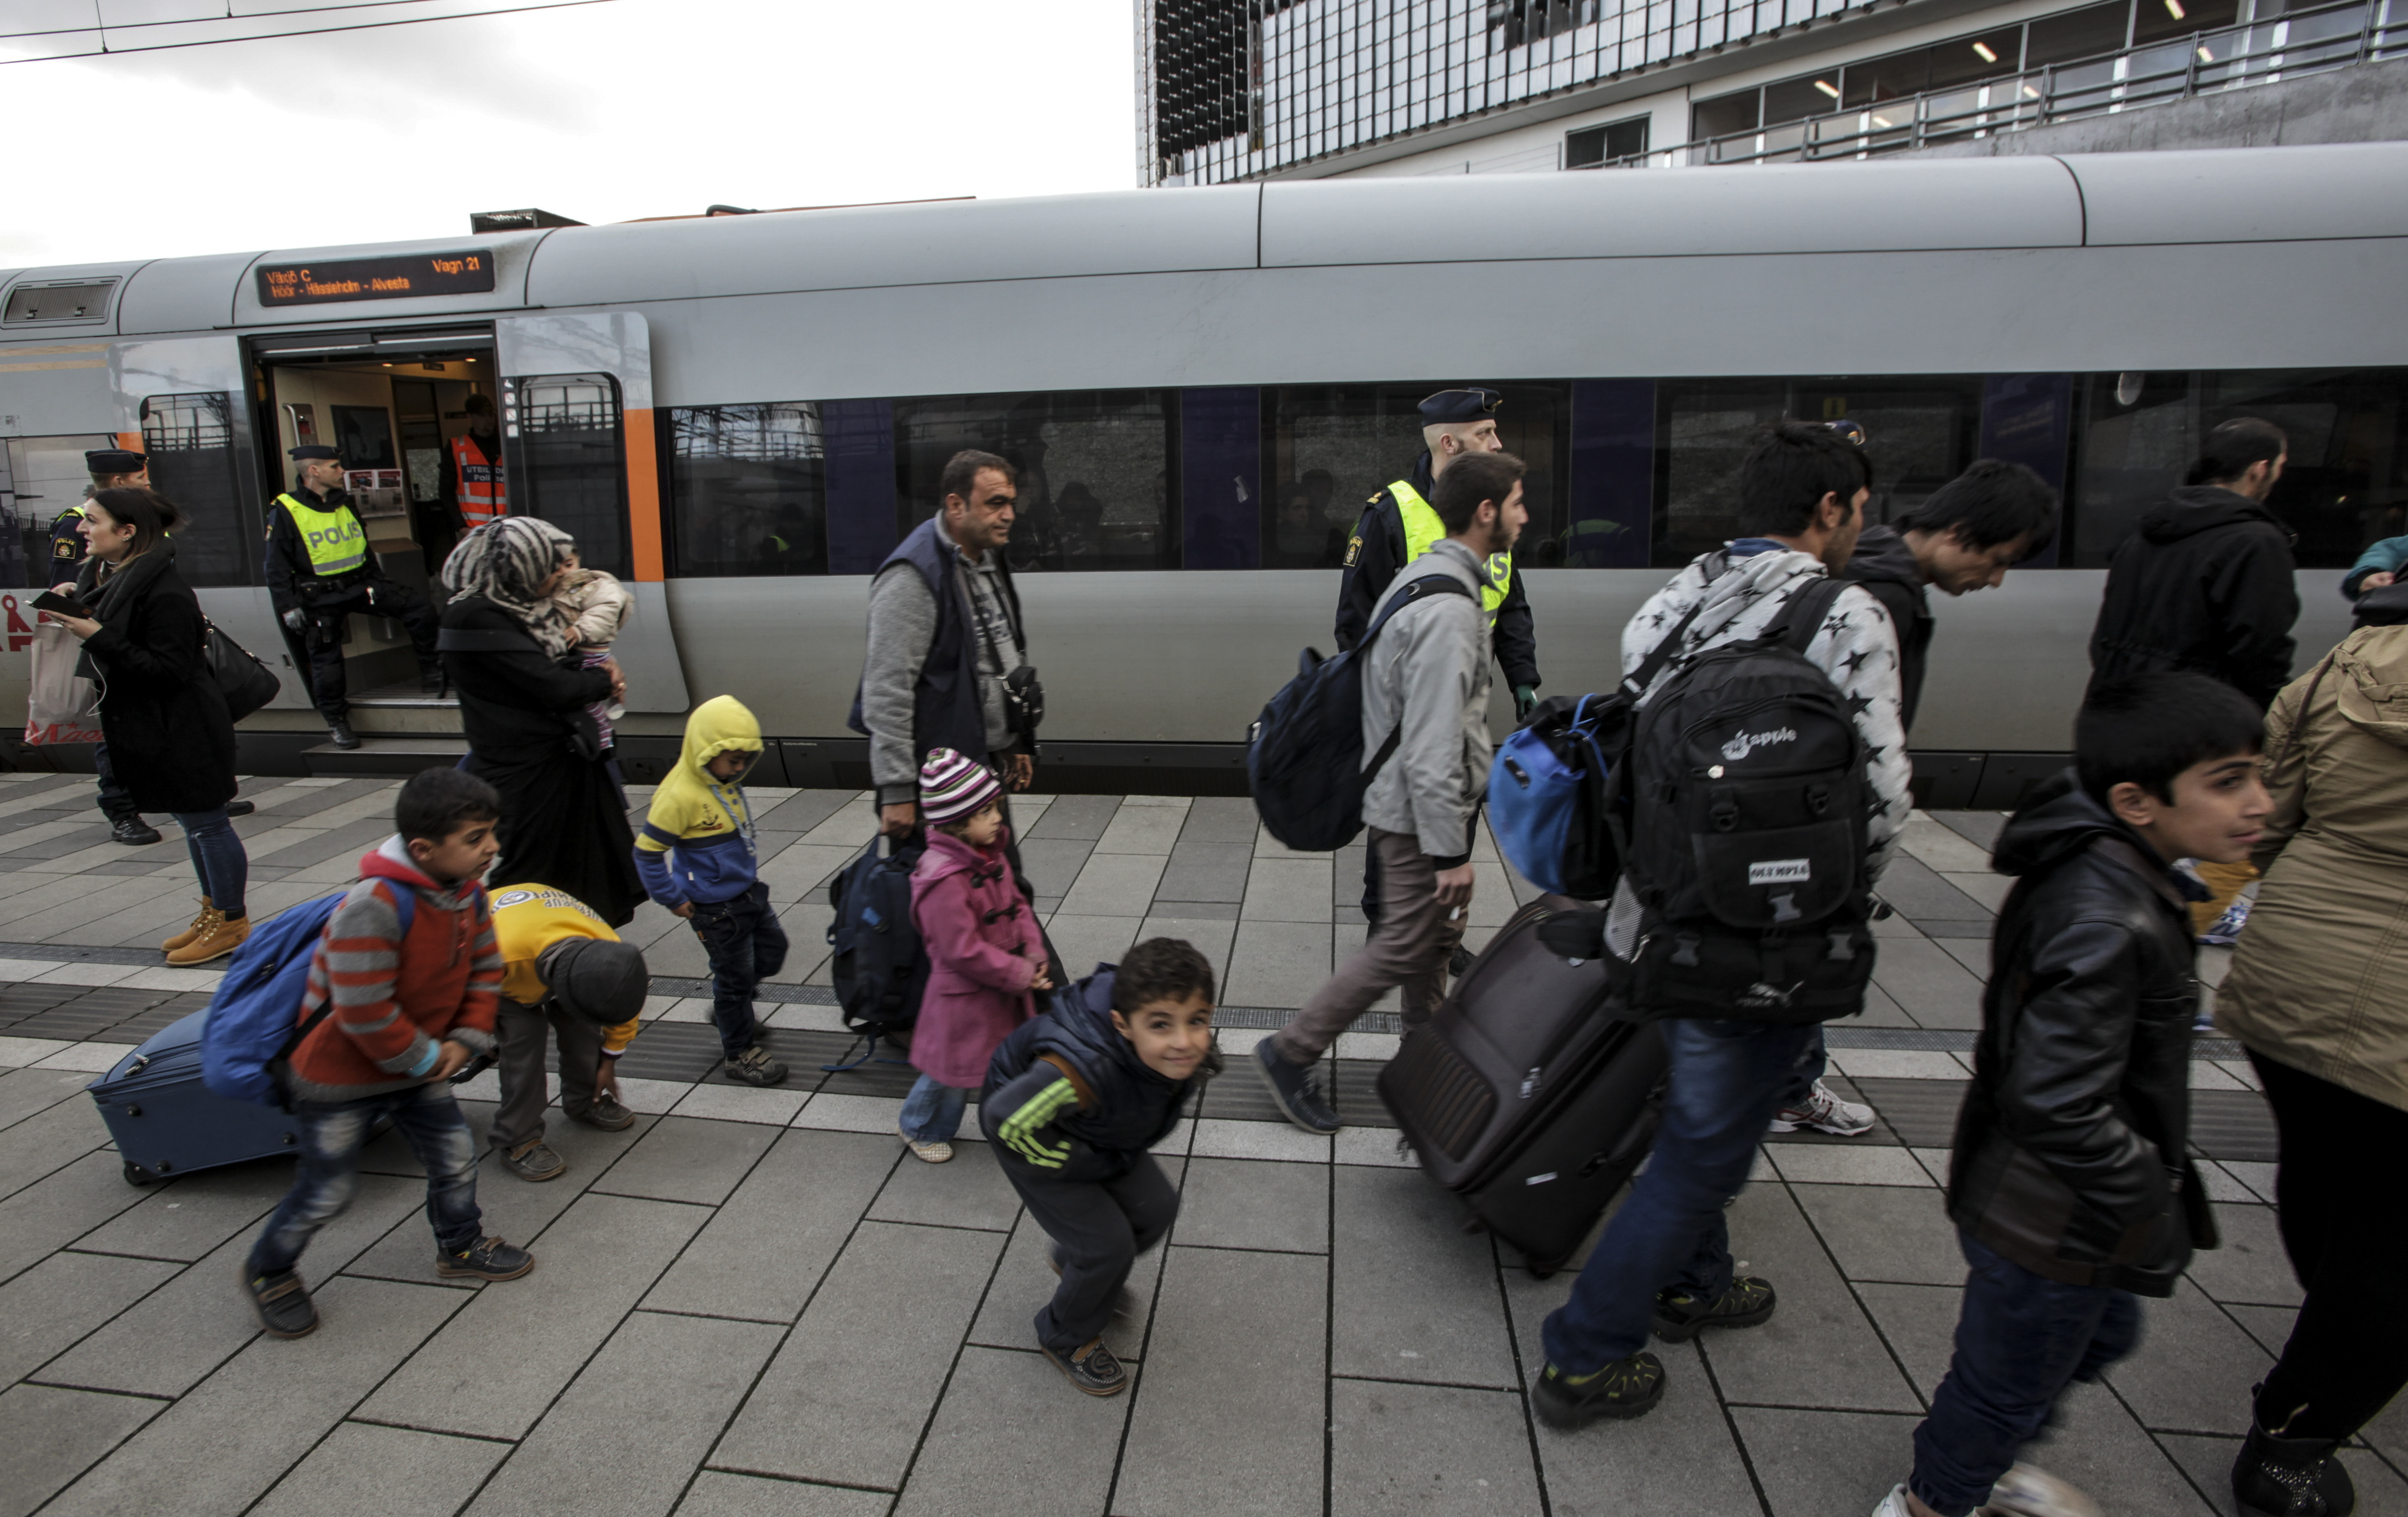 Denmark's New Plan to Deter Migrants: Seize Their Valuables